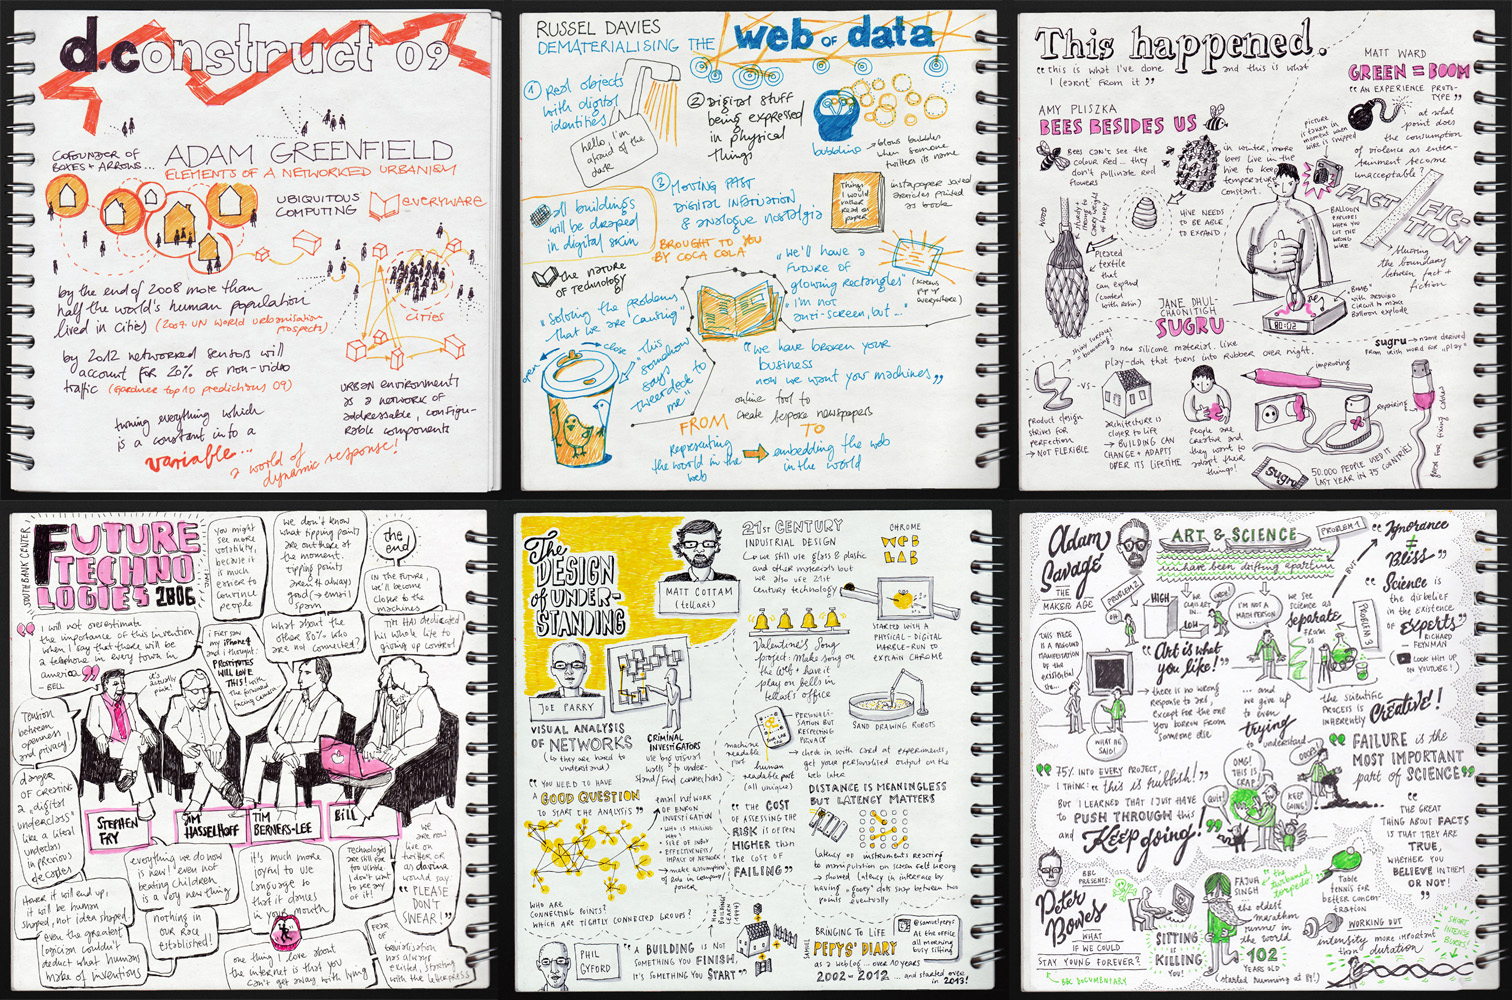 Conference sketchnotes progression over the years